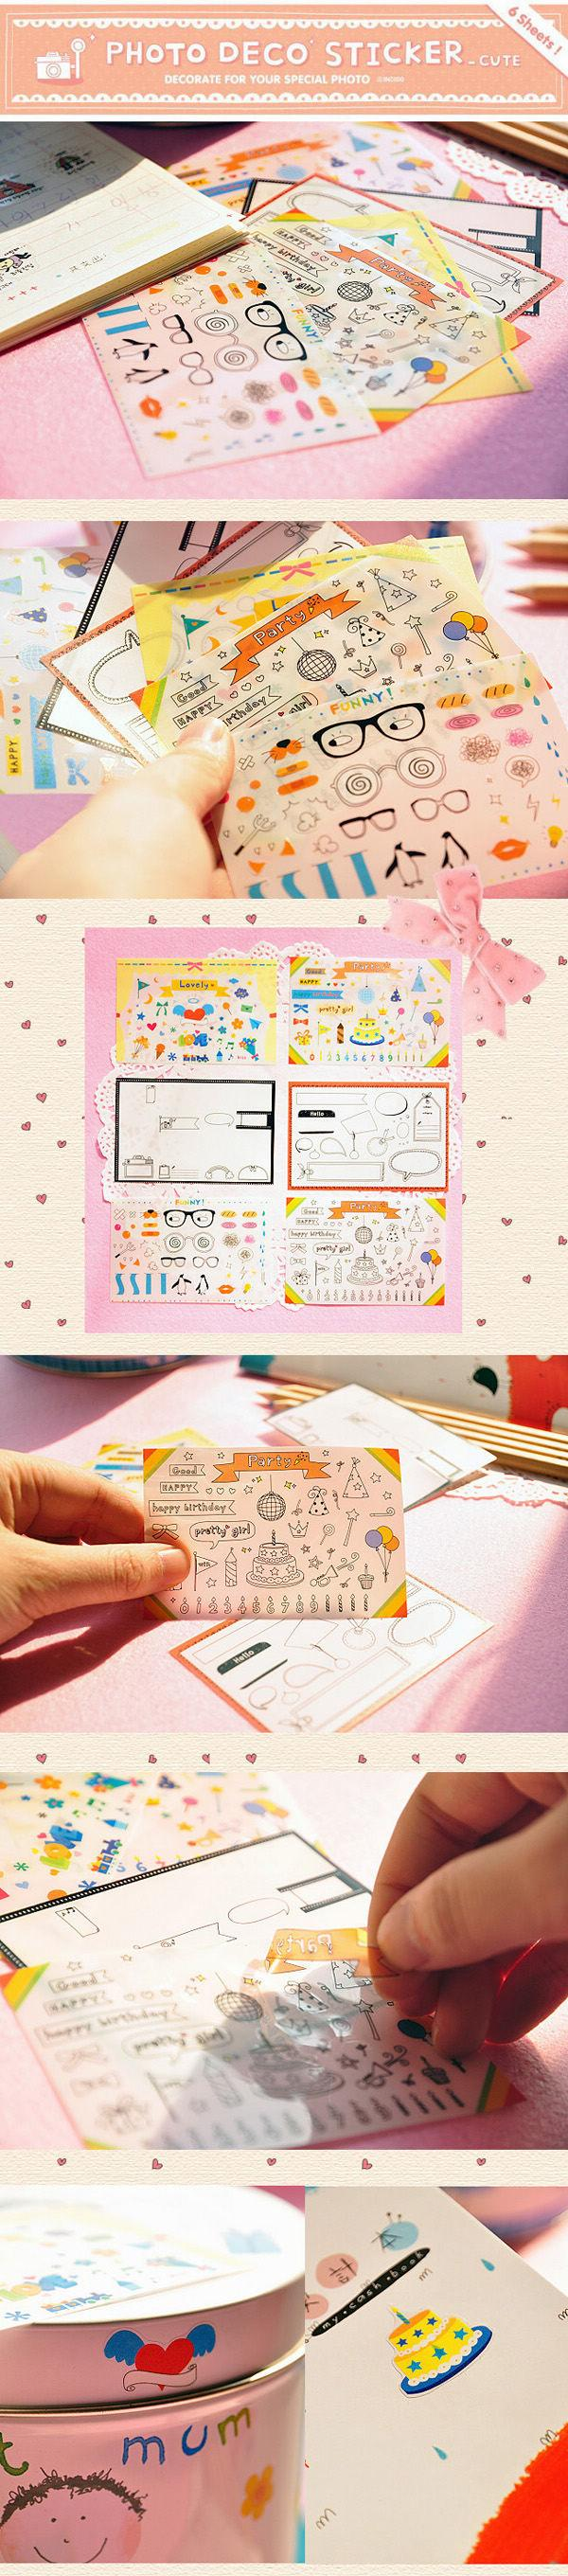 6 pcs Party Themes Stickers Photo Deco Stickers